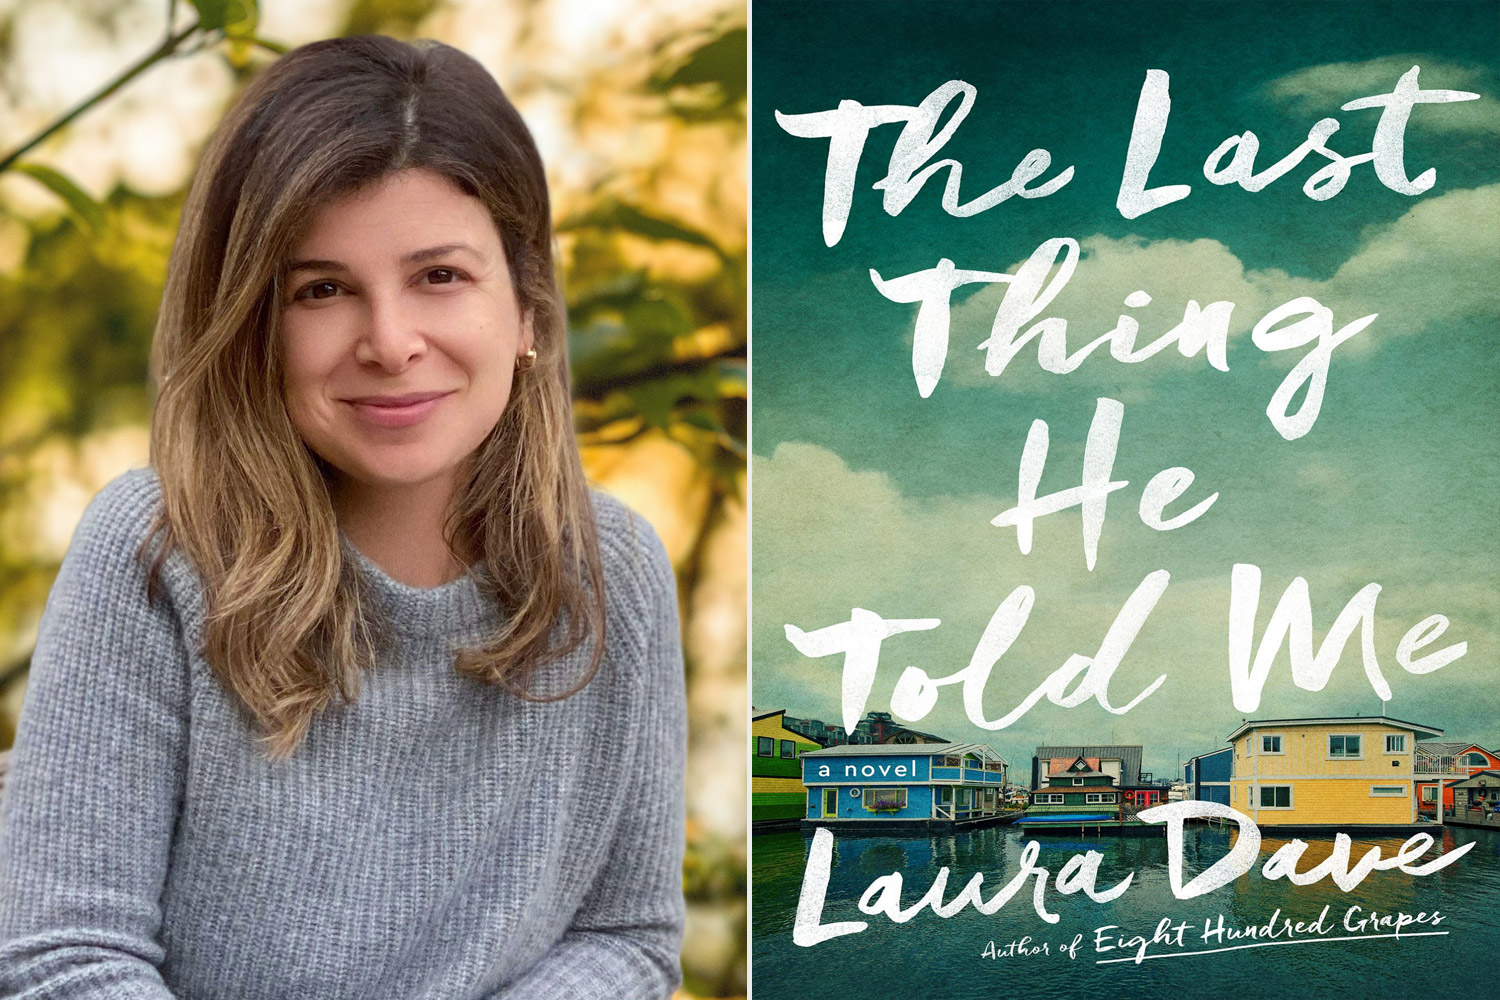 The Last Think He Told Me by Laura Dave